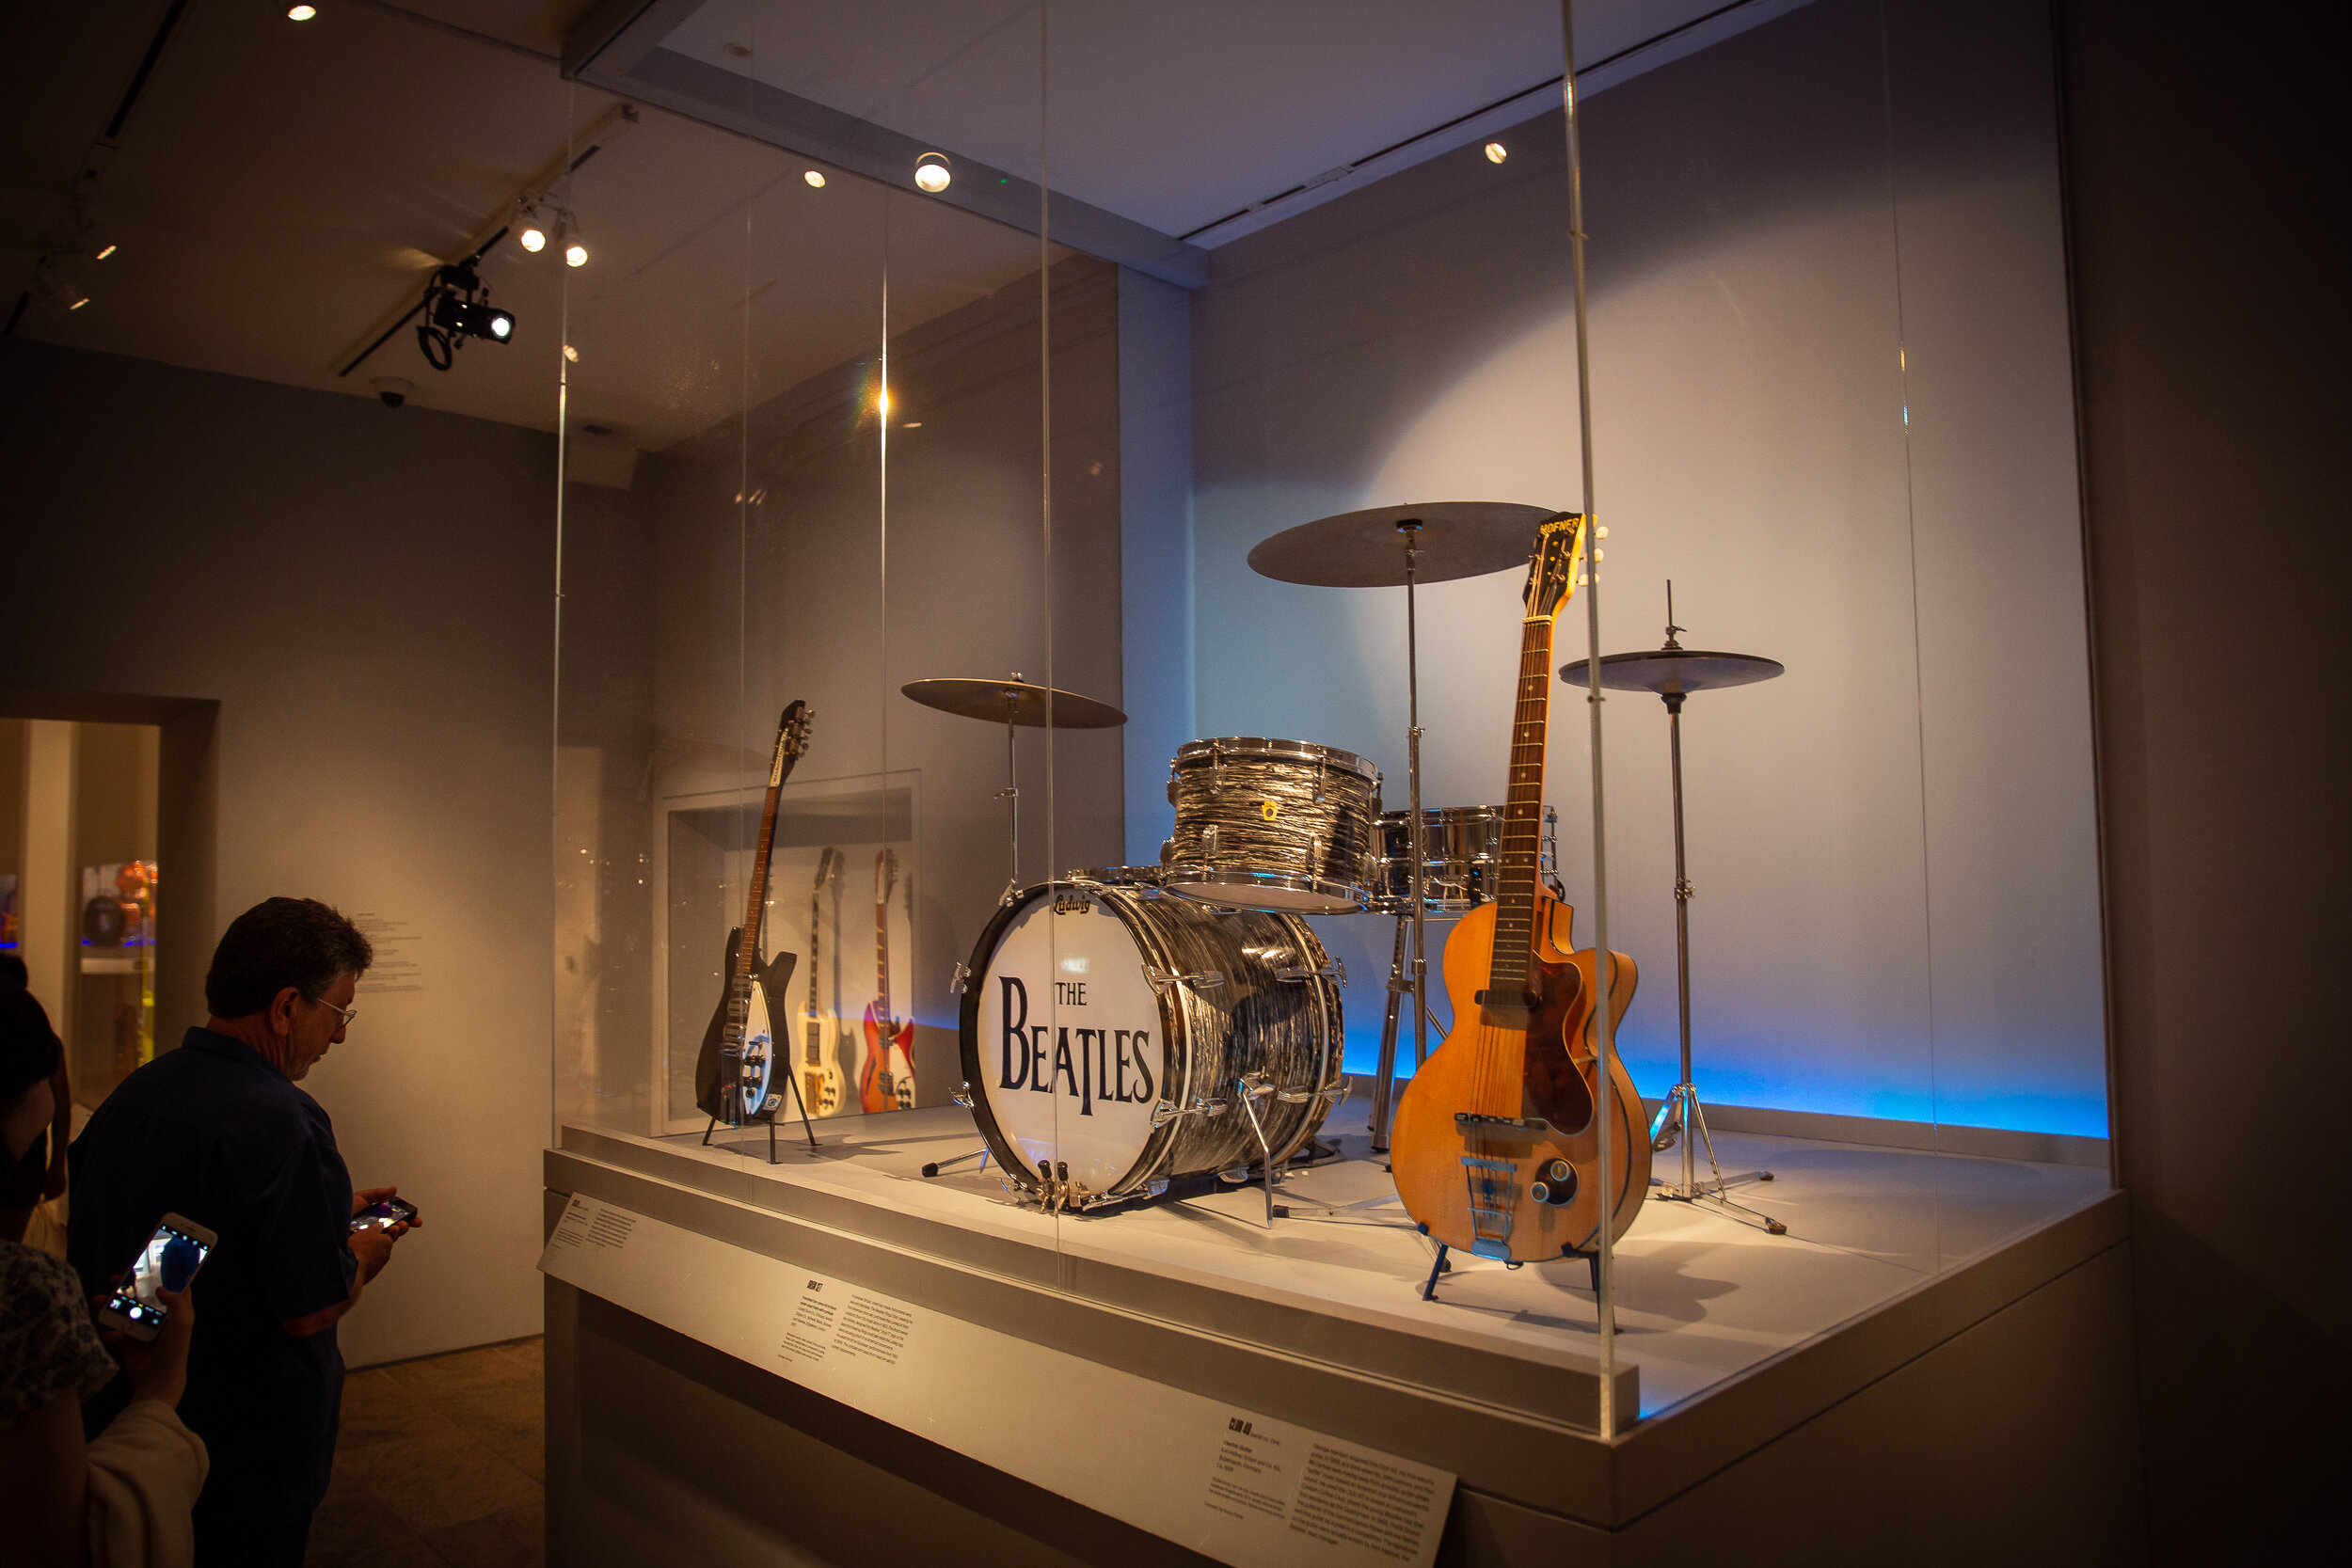 The Beatles' instruments at The Metropolitan Museum of Art